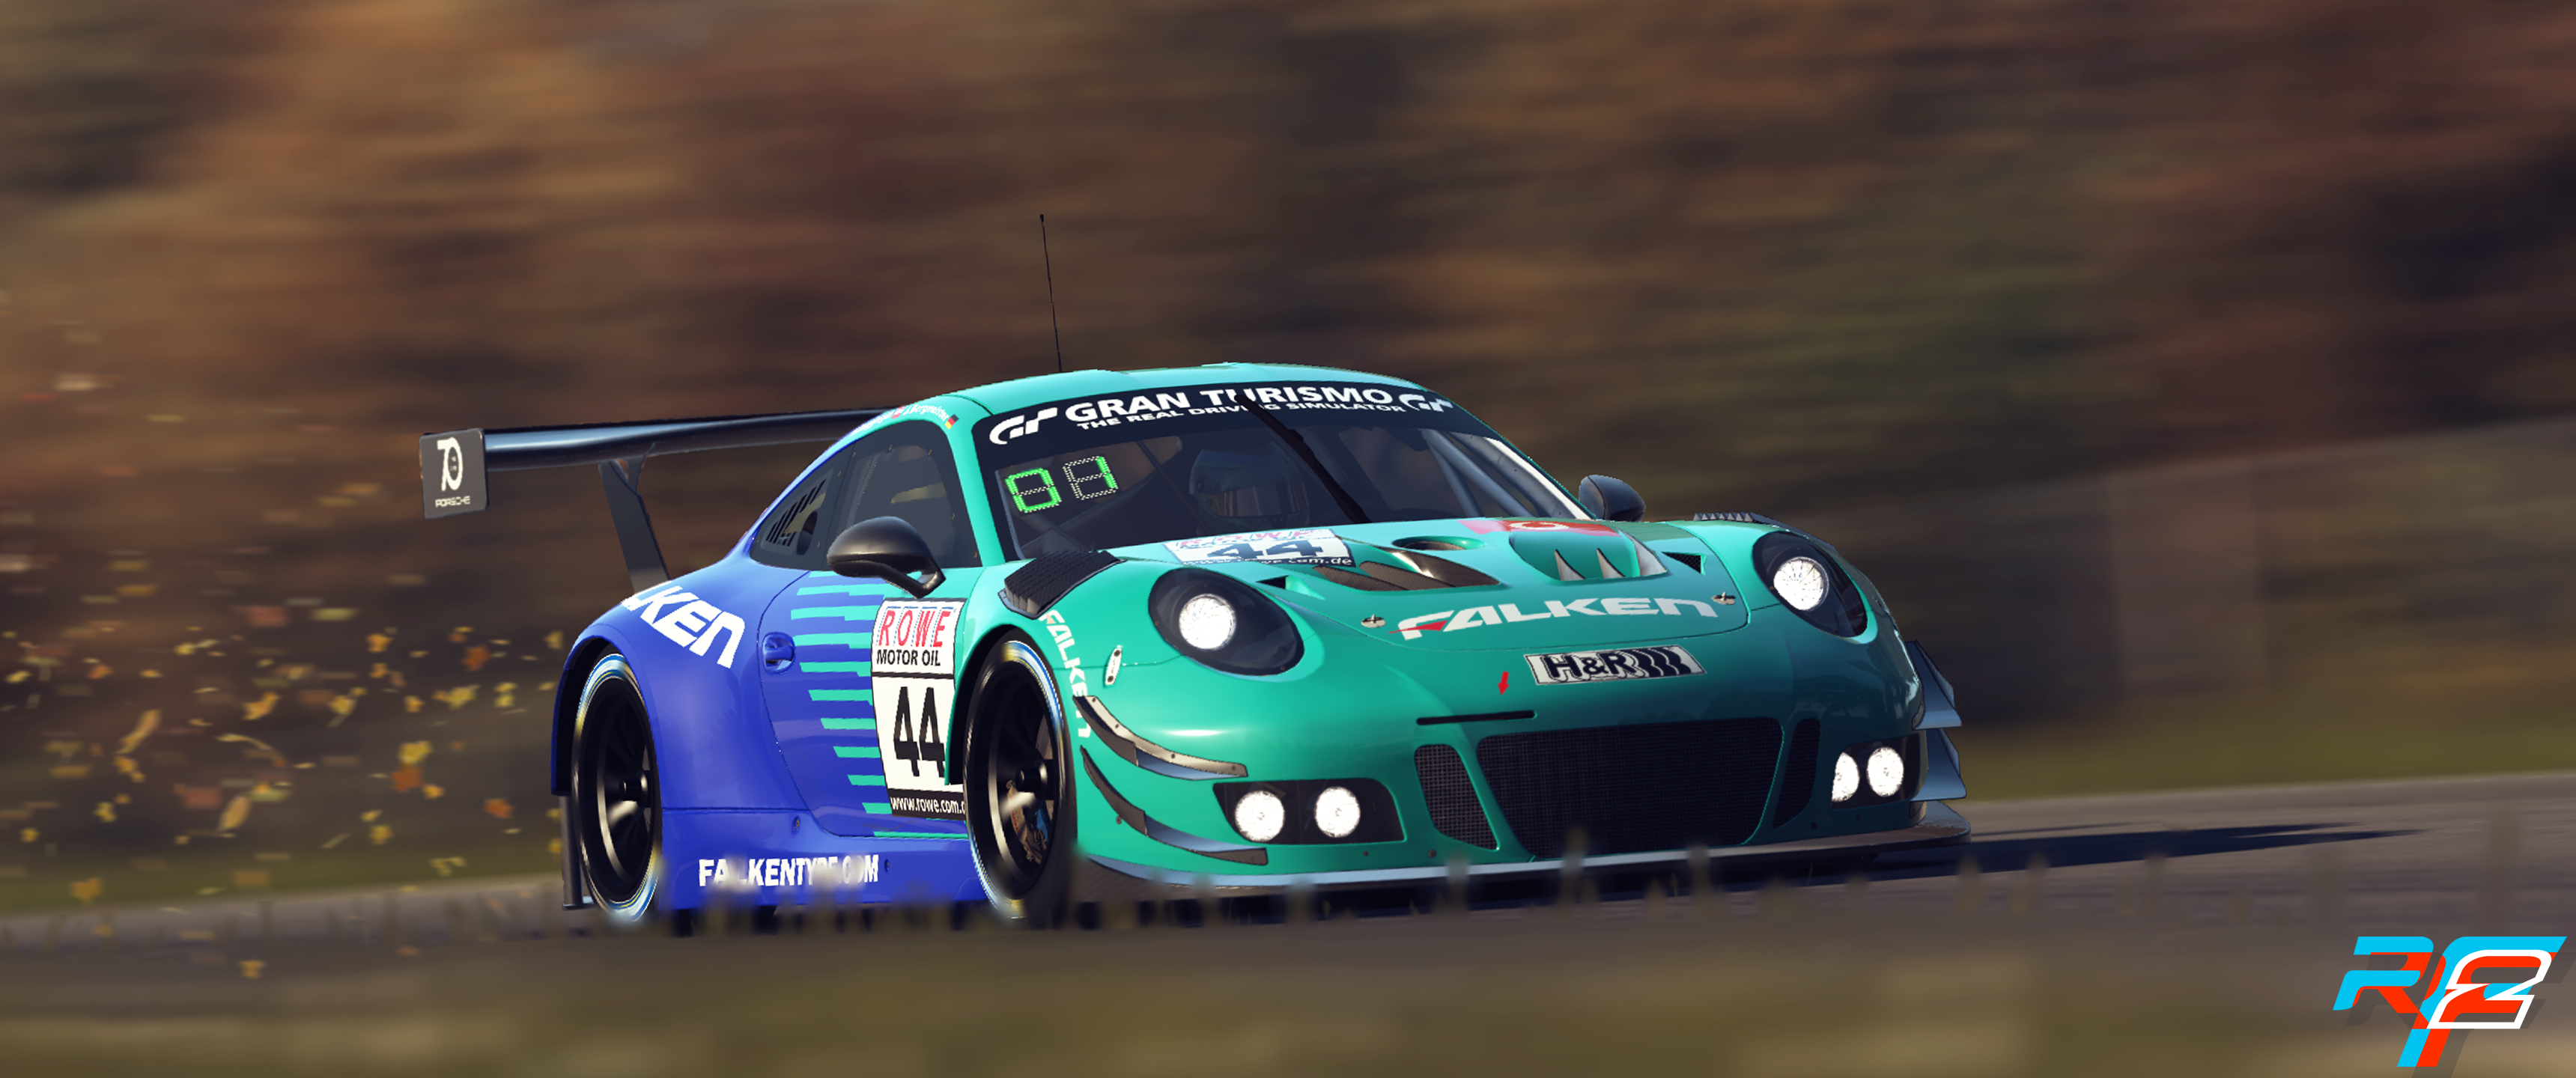 rFactor2 2019-02-25 00-10-30-96.png